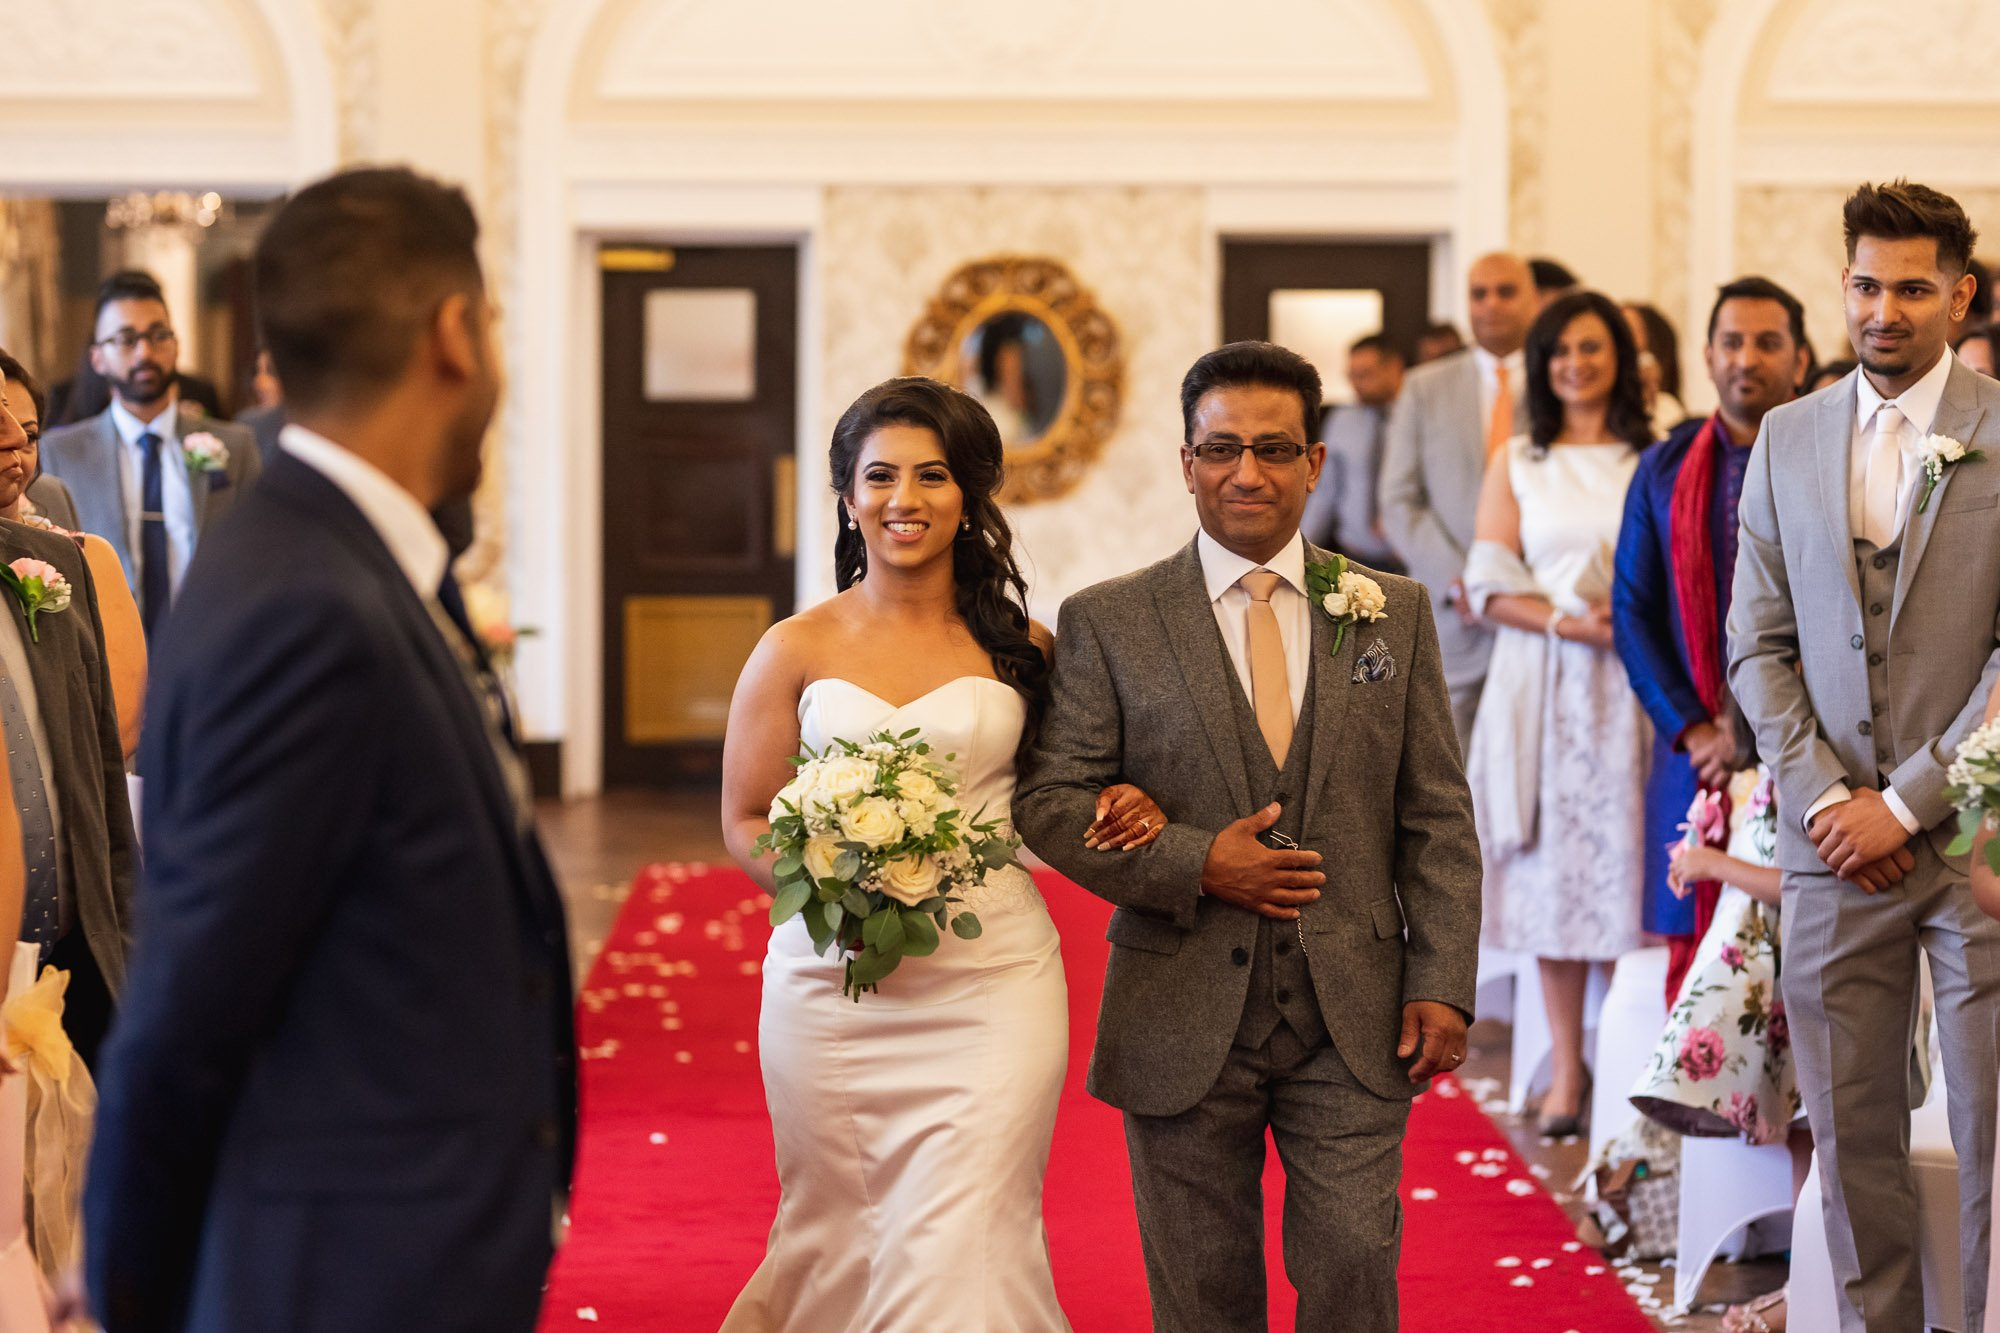 Dunchurch Park Hotel, Asian wedding photographer Midlands, walking down the aisle